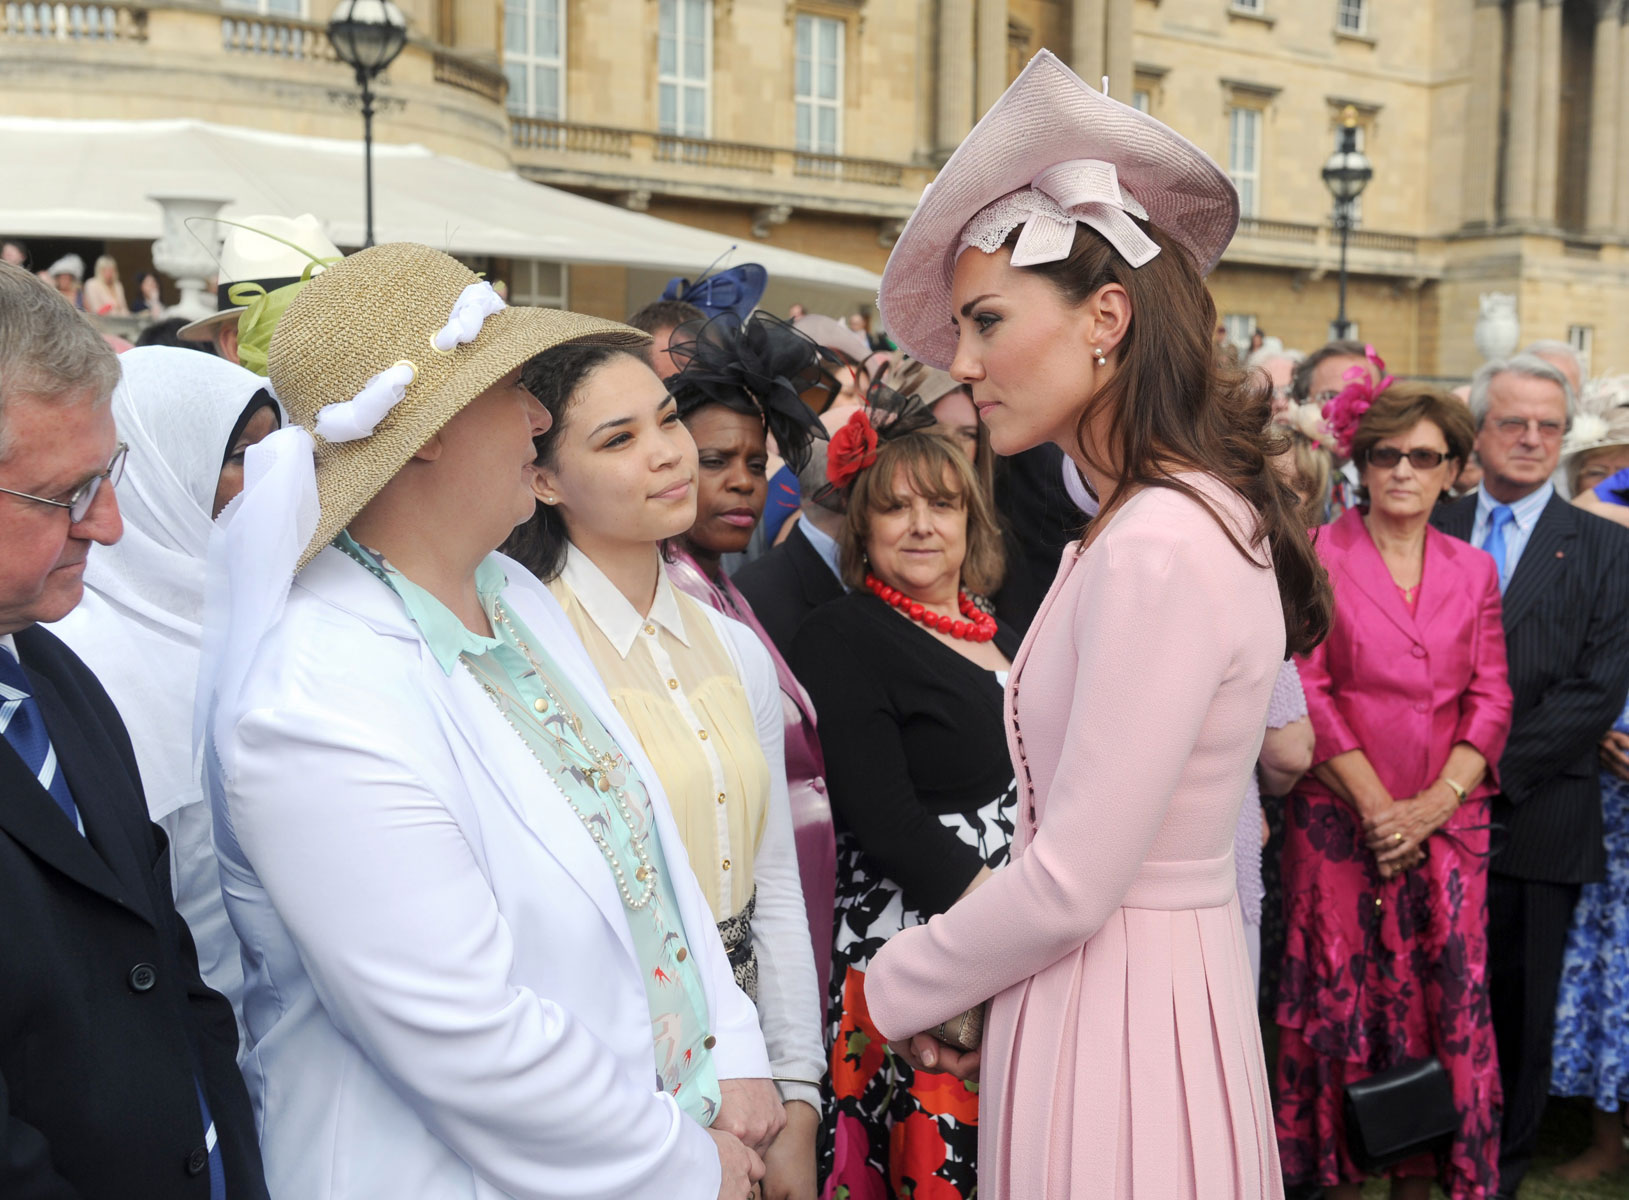 32da5c22b1ed5 KATE MIDDLETON Attends at Buckingham Palace Garden Party - HawtCelebs